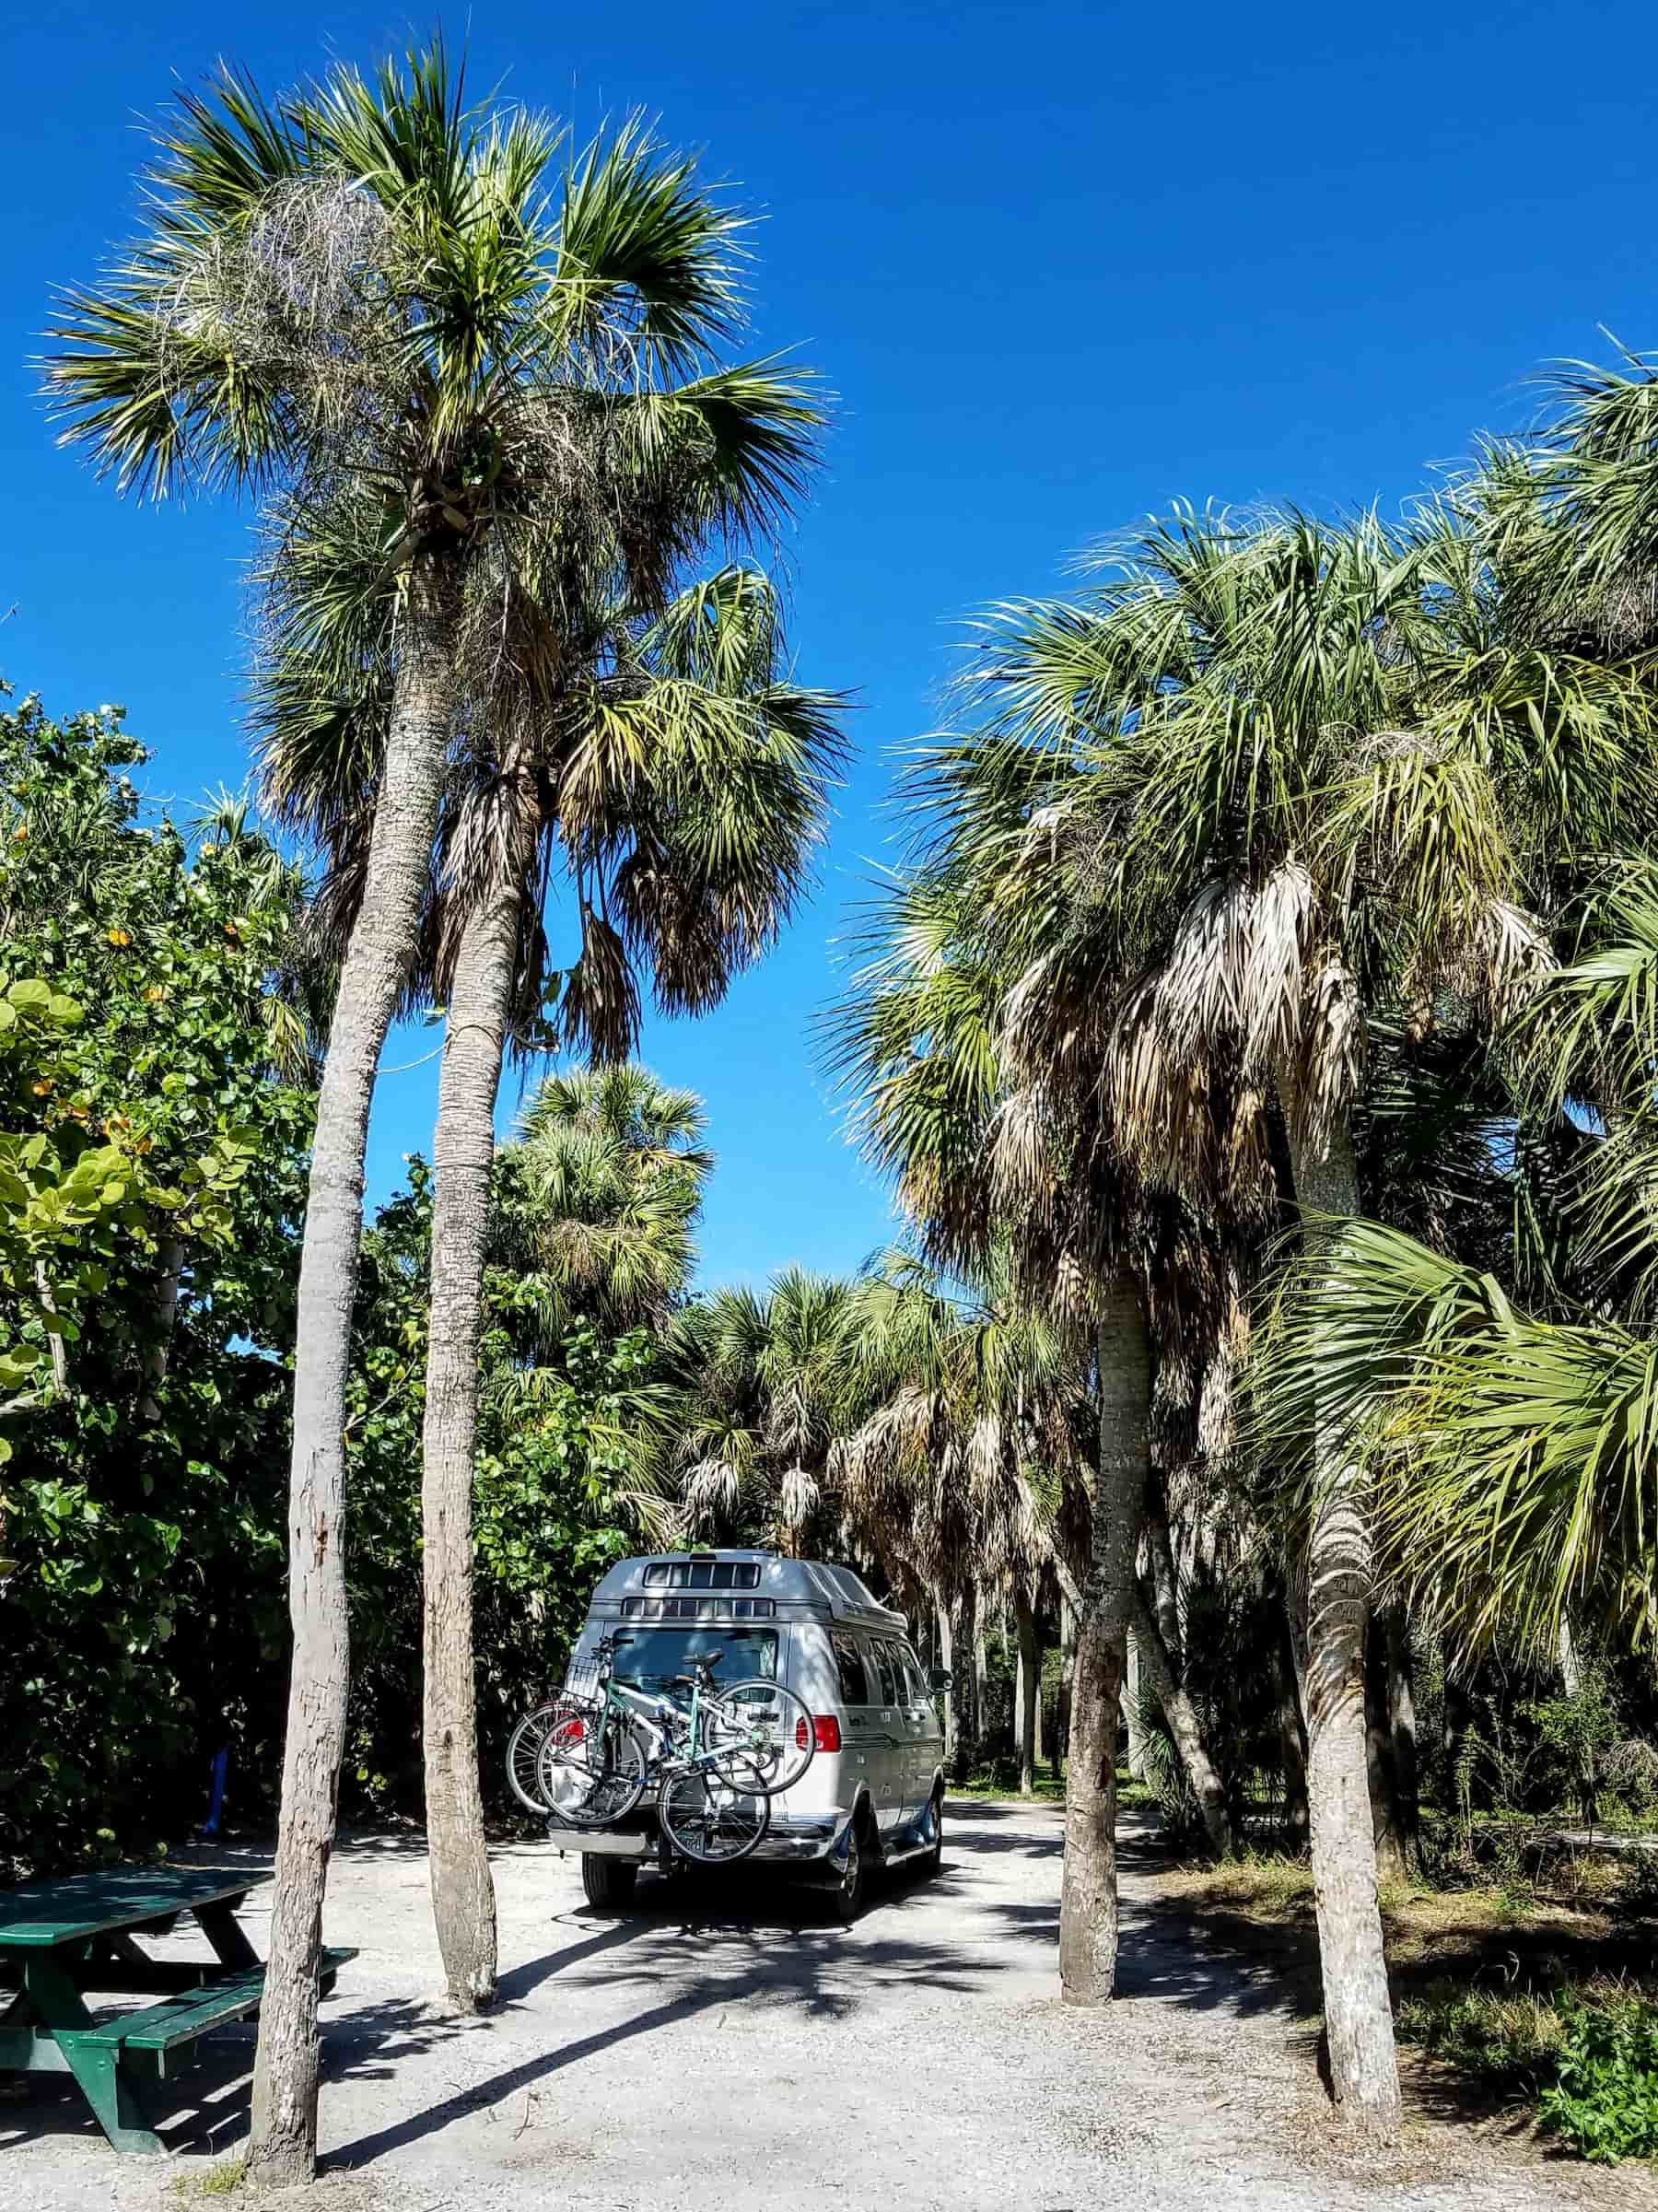 Van parked at For De Soto Campground in Florida surrounded by palm trees beside the beach.